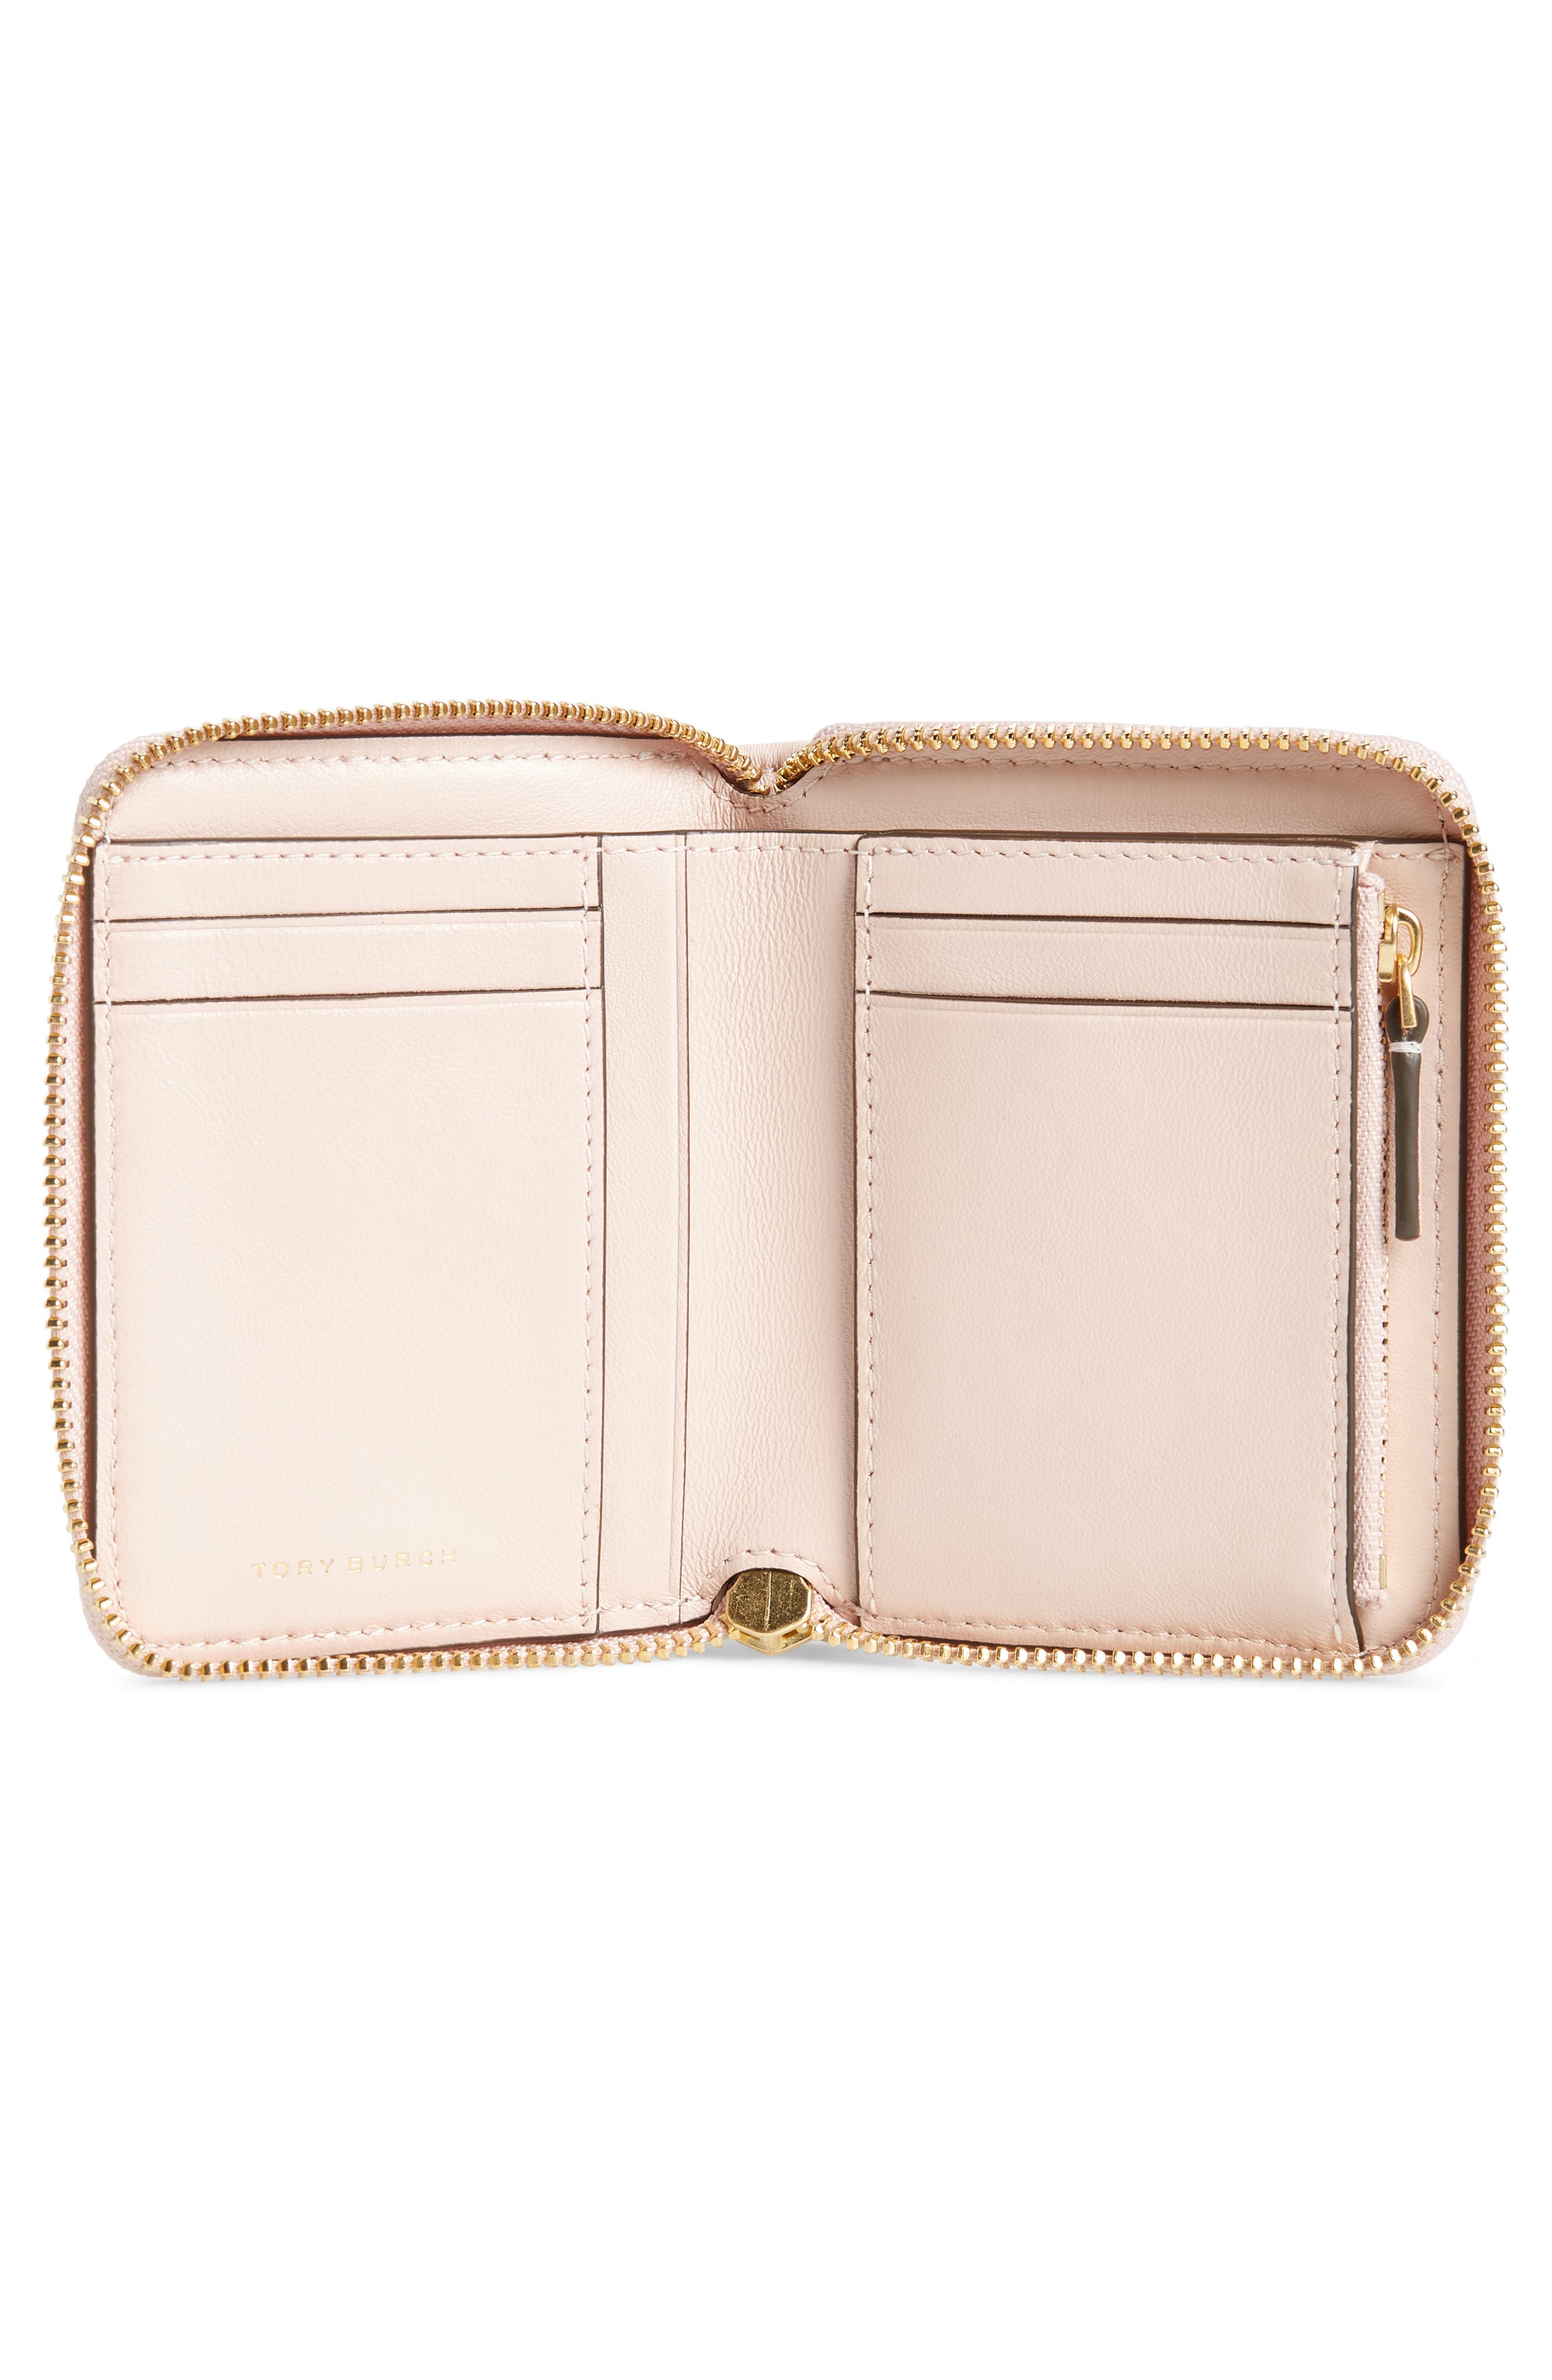 Fleming Medium Leather Zip Around Wallet,                             Alternate thumbnail 2, color,                             SHELL PINK